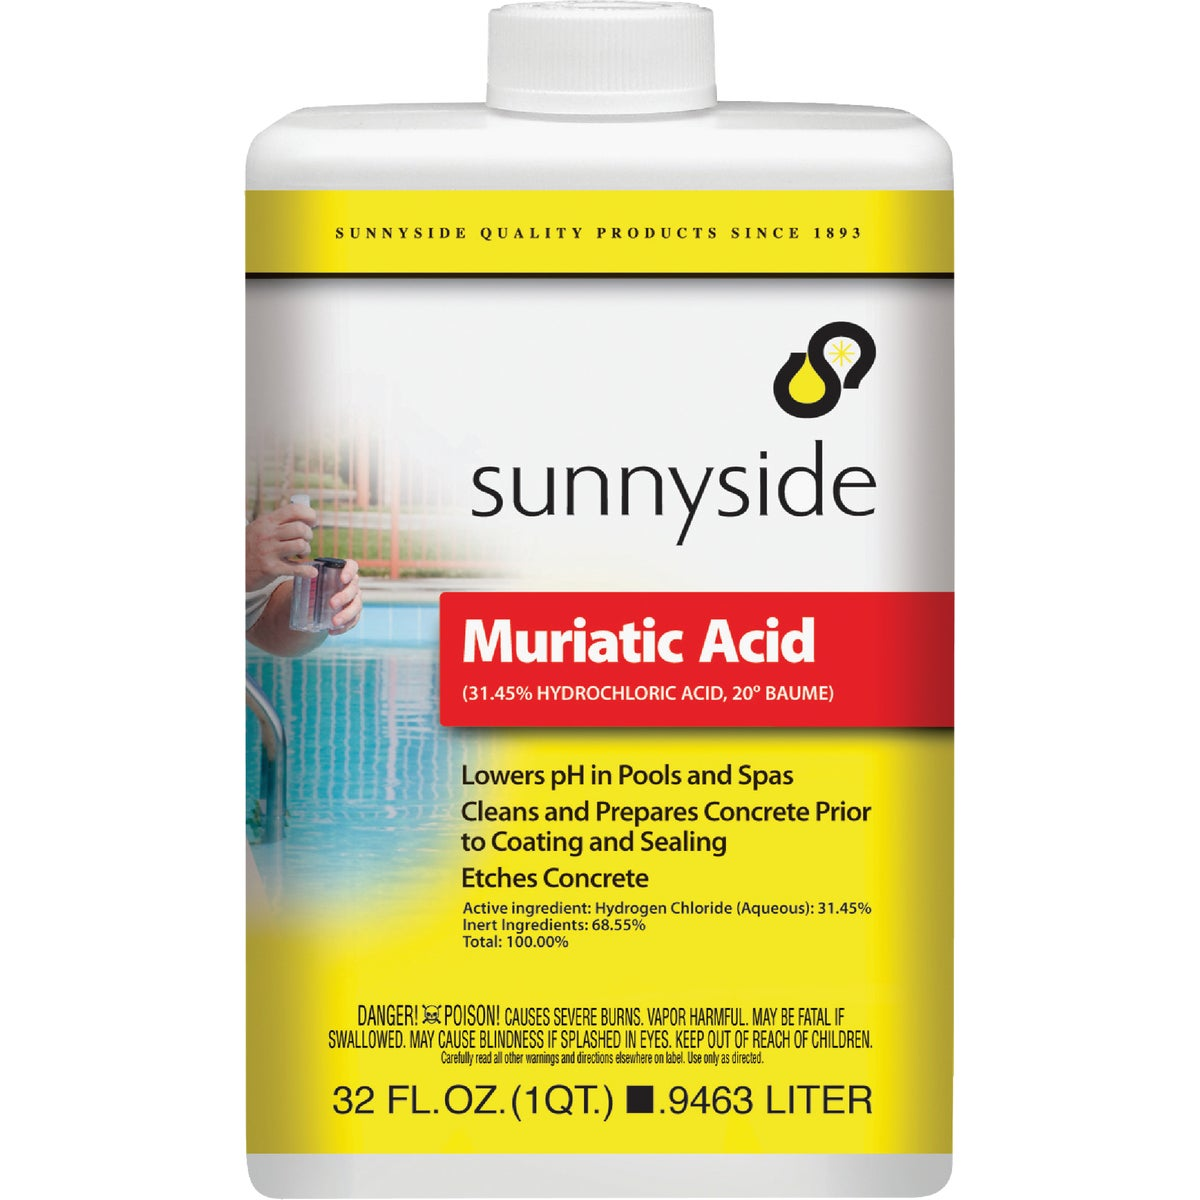 QT MURIATIC ACID - 71032 by Sunnyside Corp